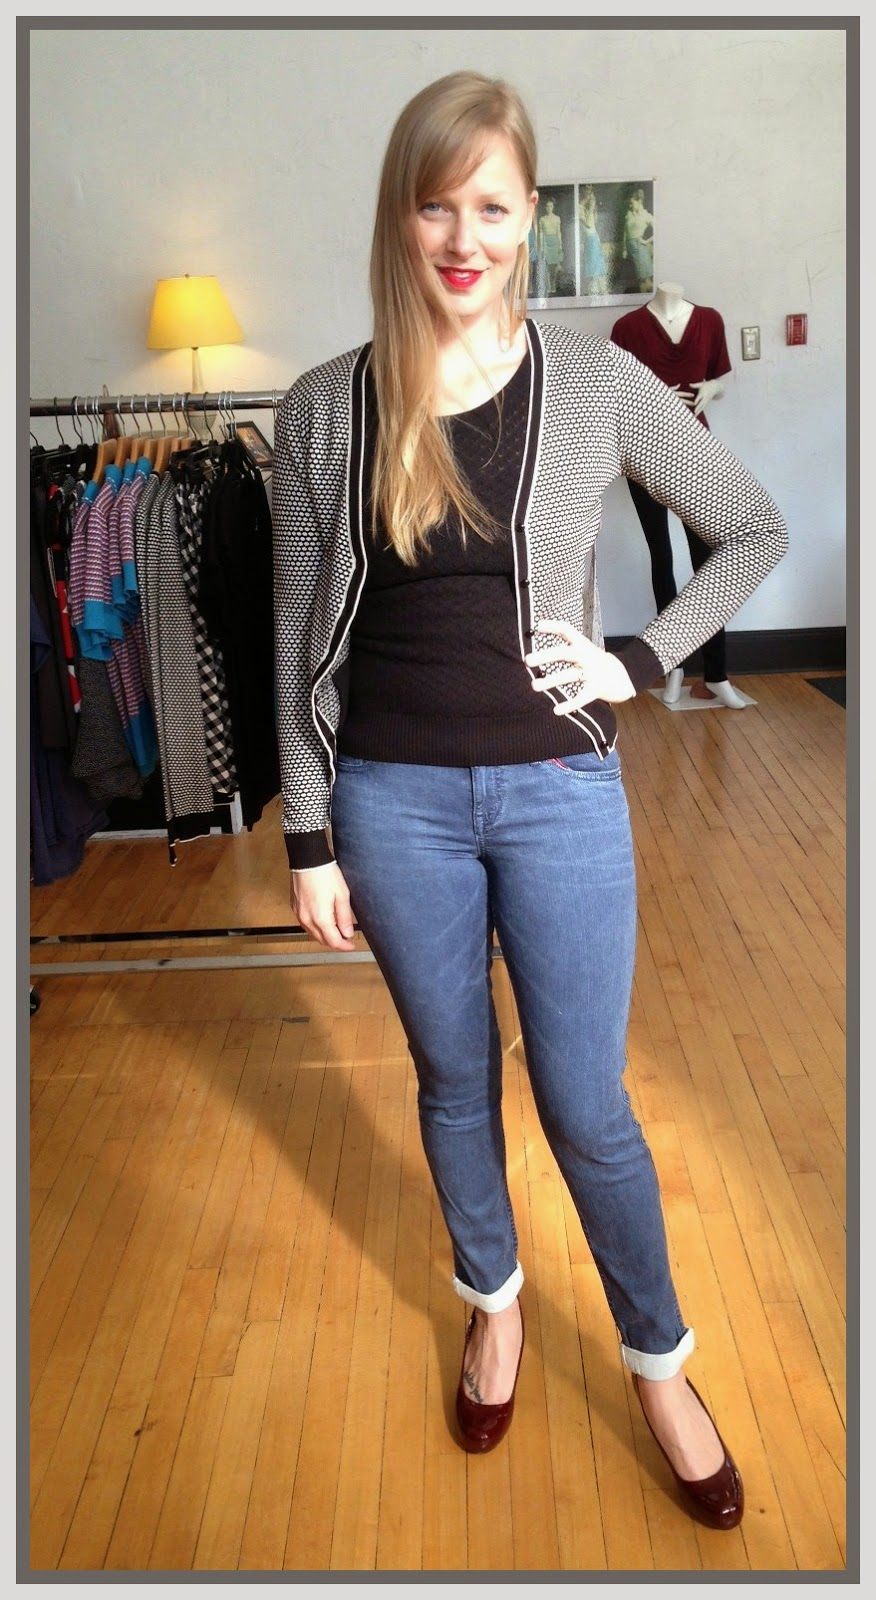 Louie et Lucie zigzag boatneck top ($78), beehive v-neck cardigan ($88), Level 99 jeans ($140) at folly